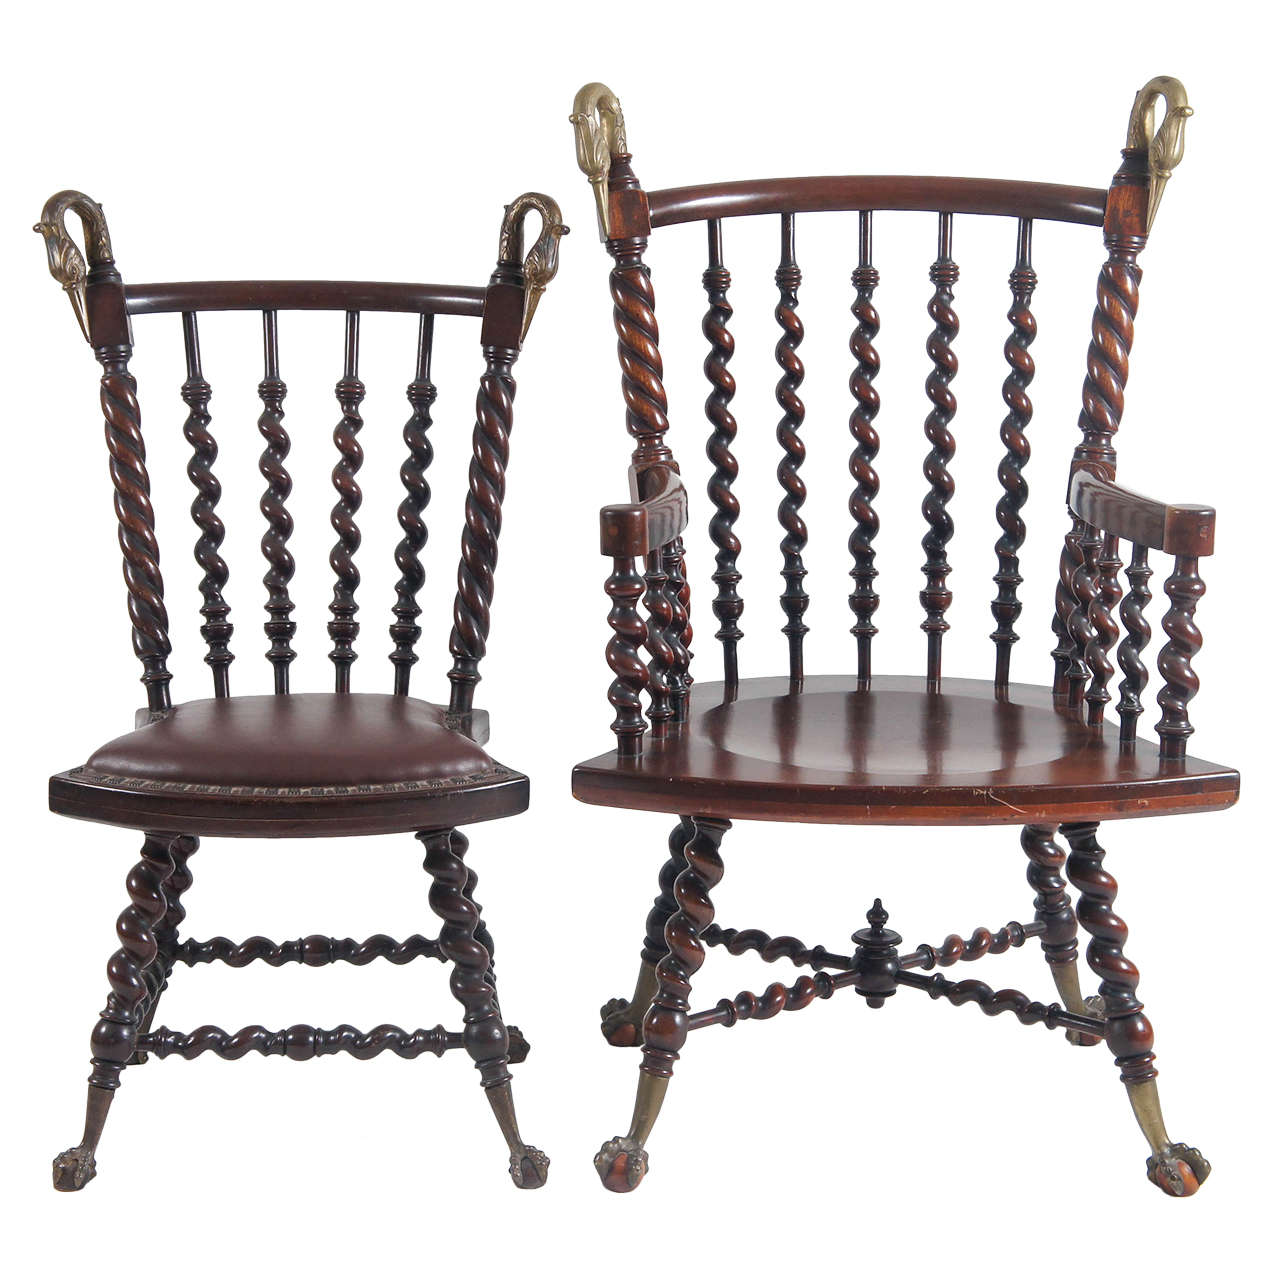 a pair of his and hers Victorian mahogany spindle chairs